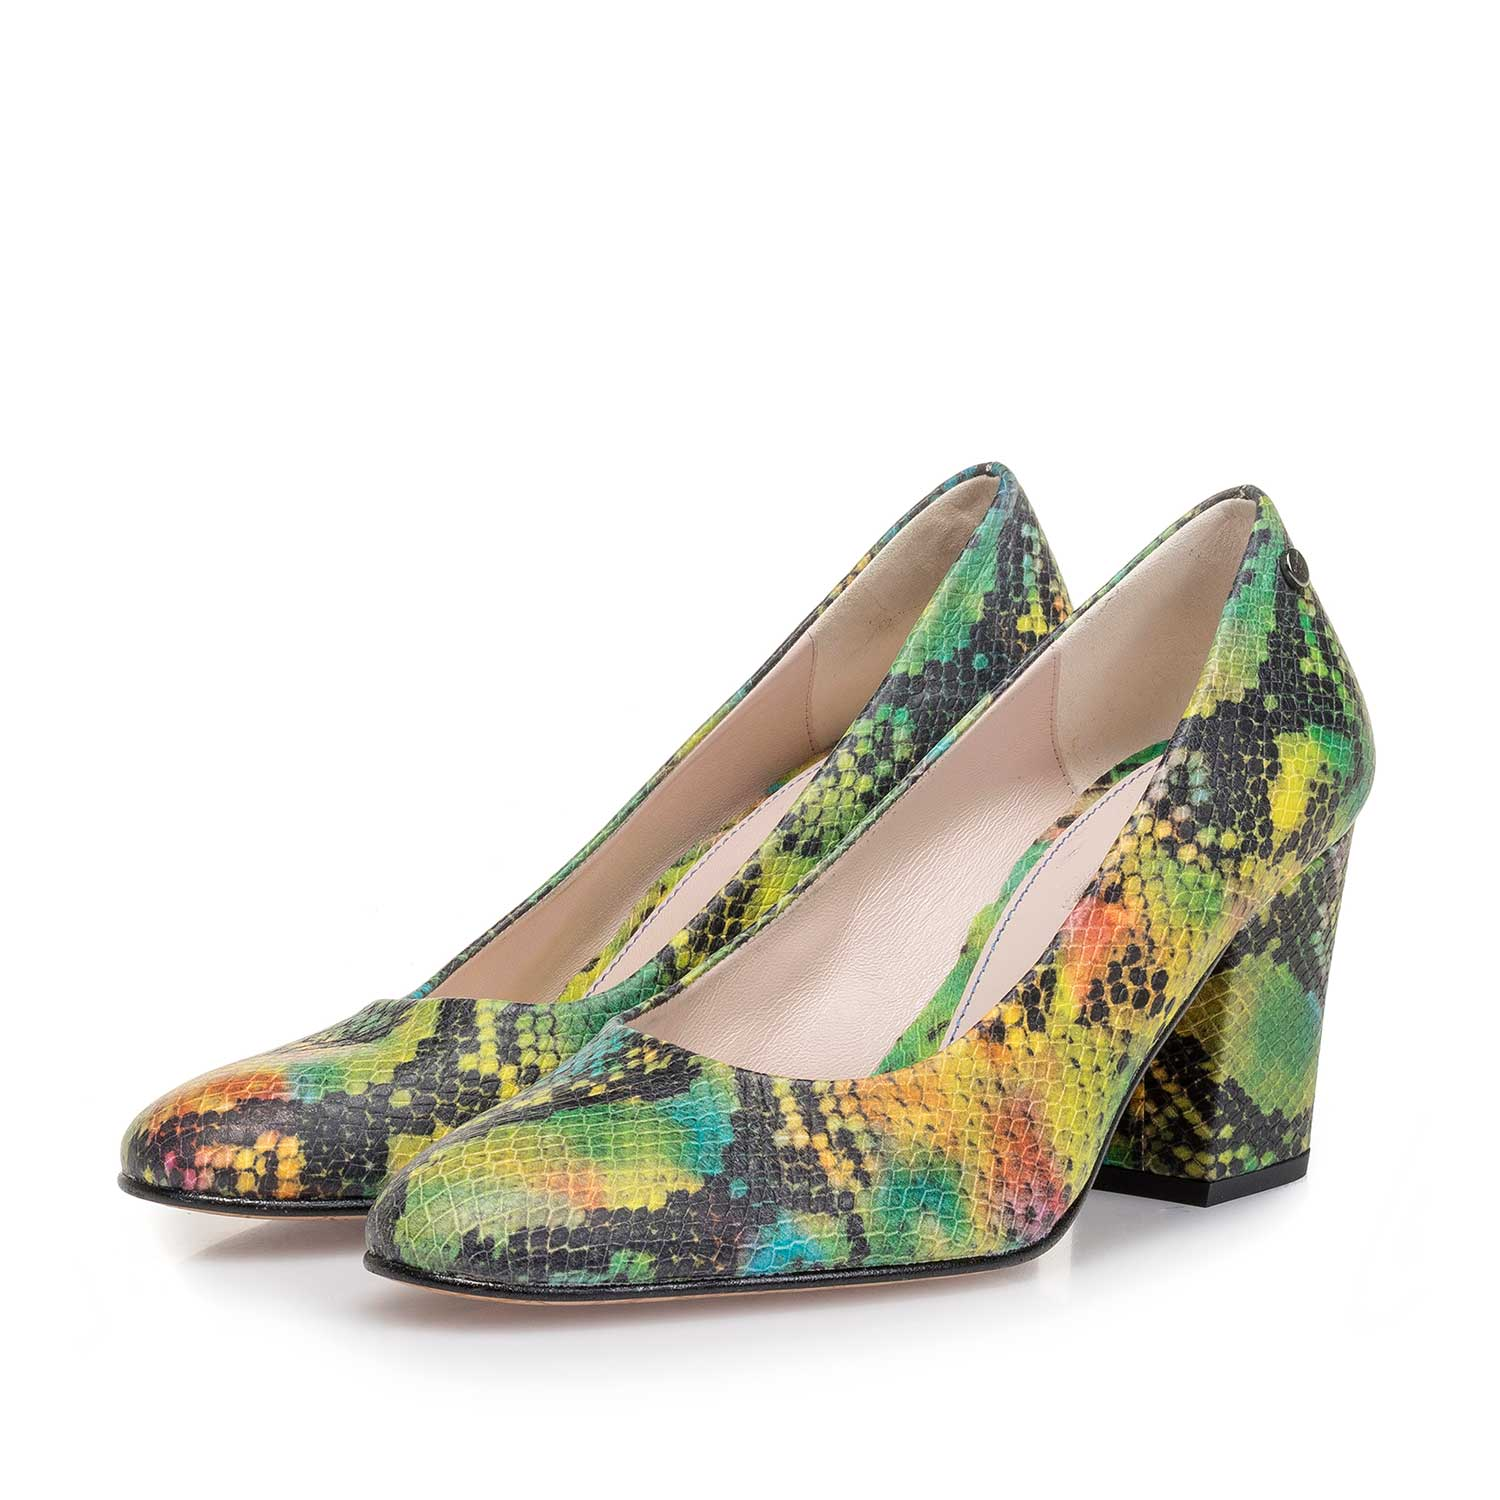 85520/00 - Green snake print leather pumps